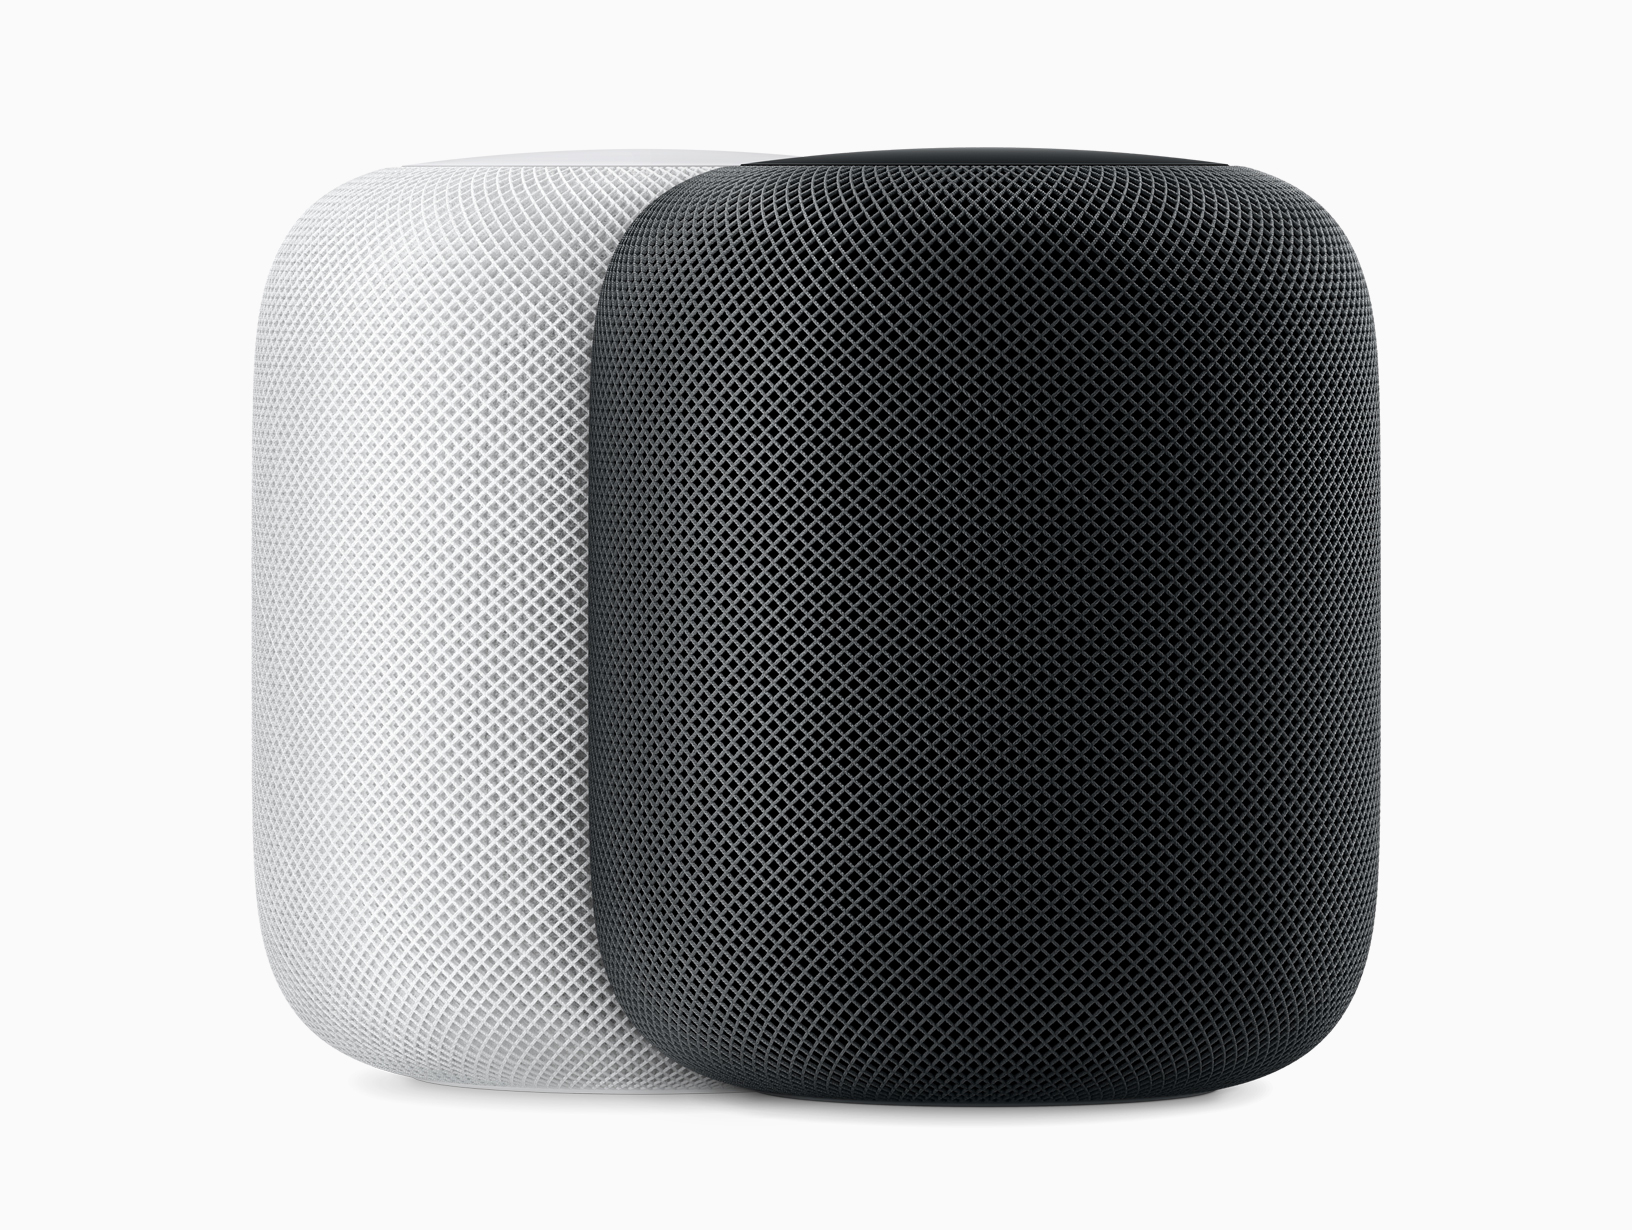 Apple Lists Third Party Speakers and Receivers That Will Support AirPlay 2